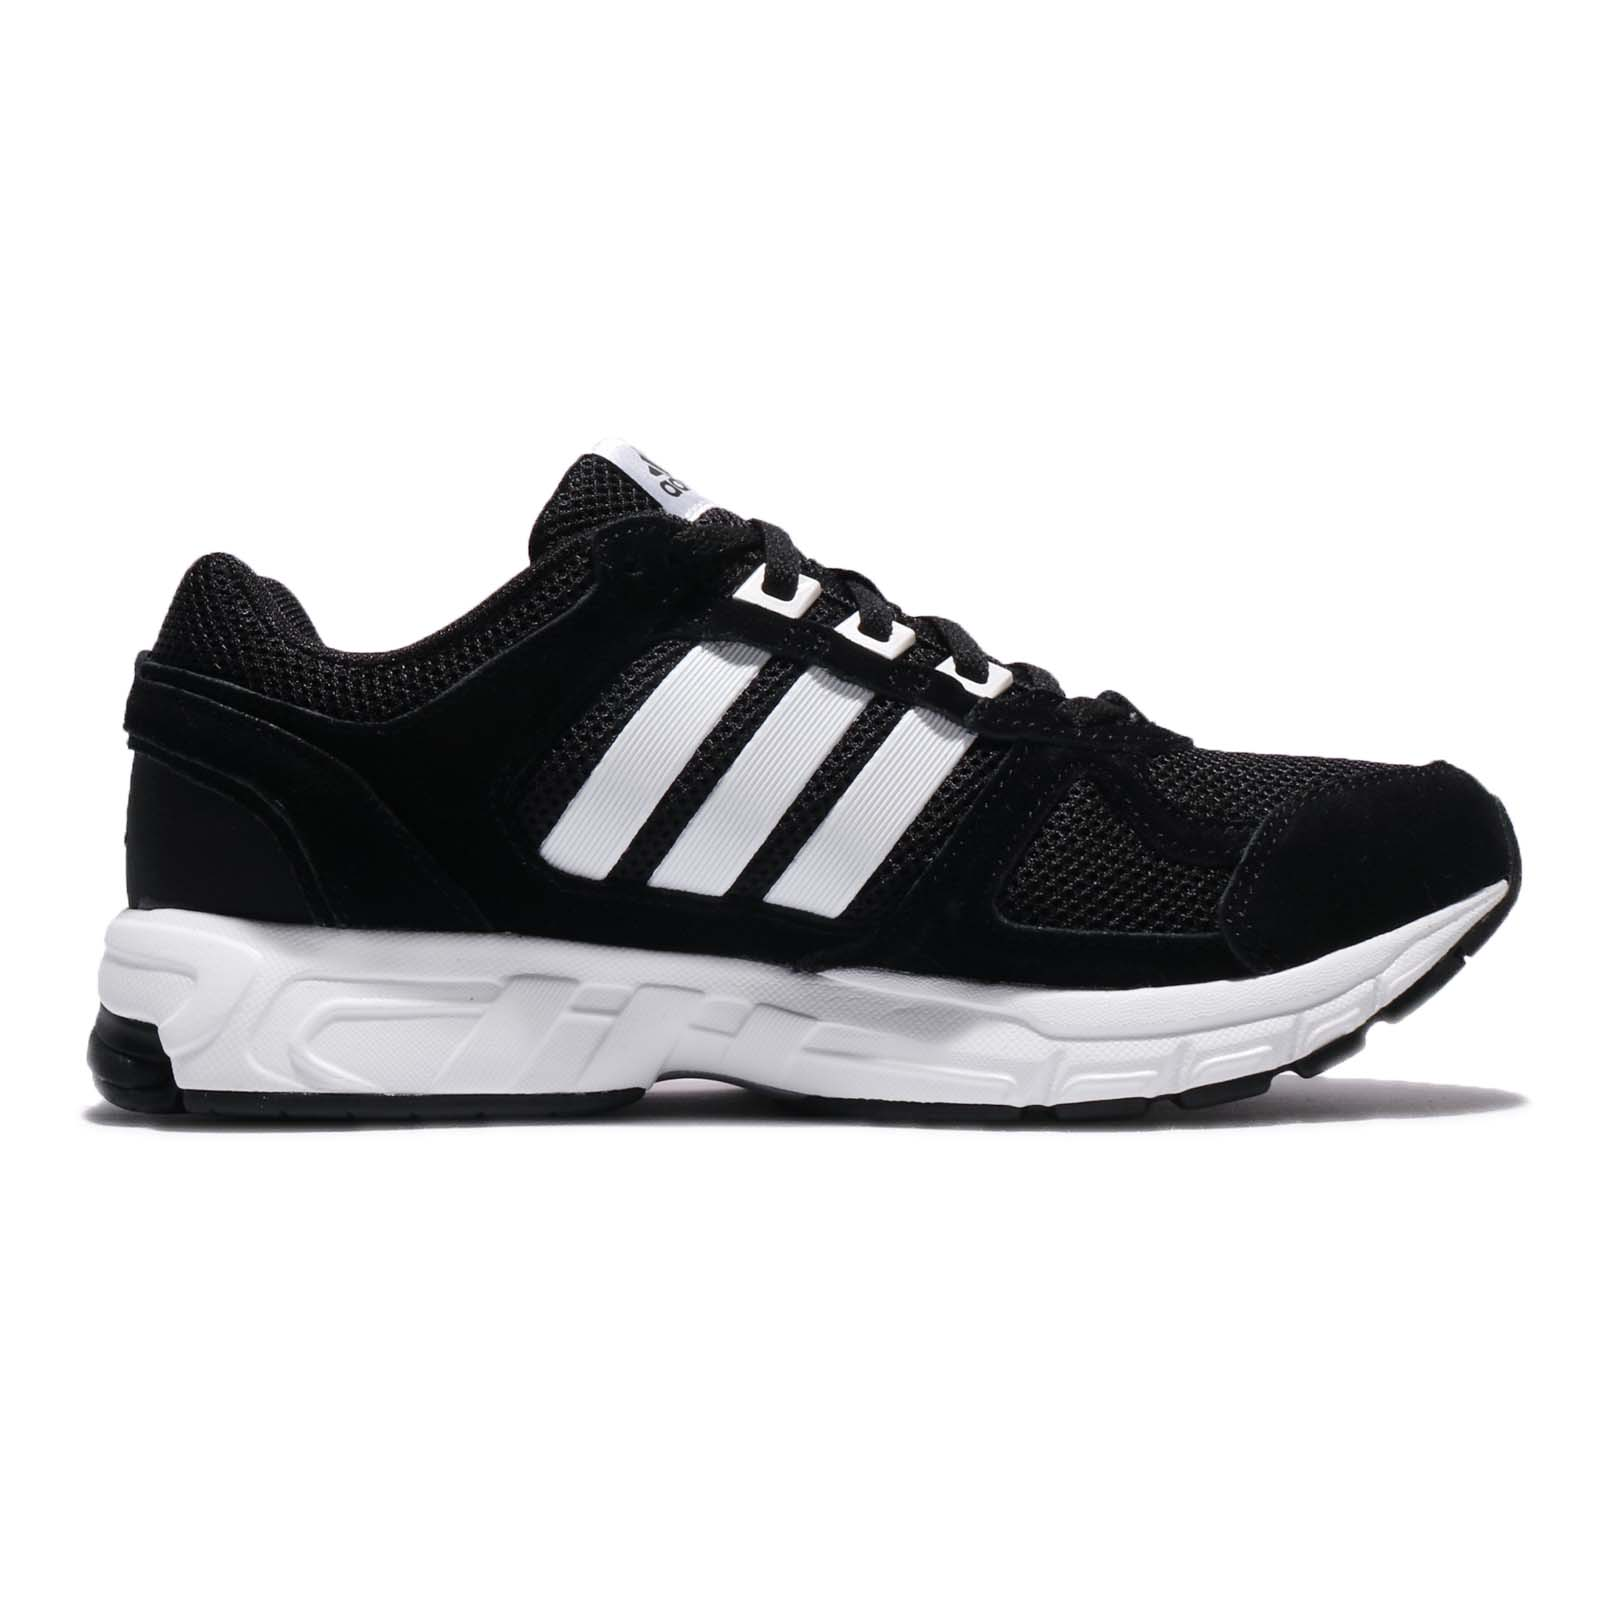 adidas equipment running shoes